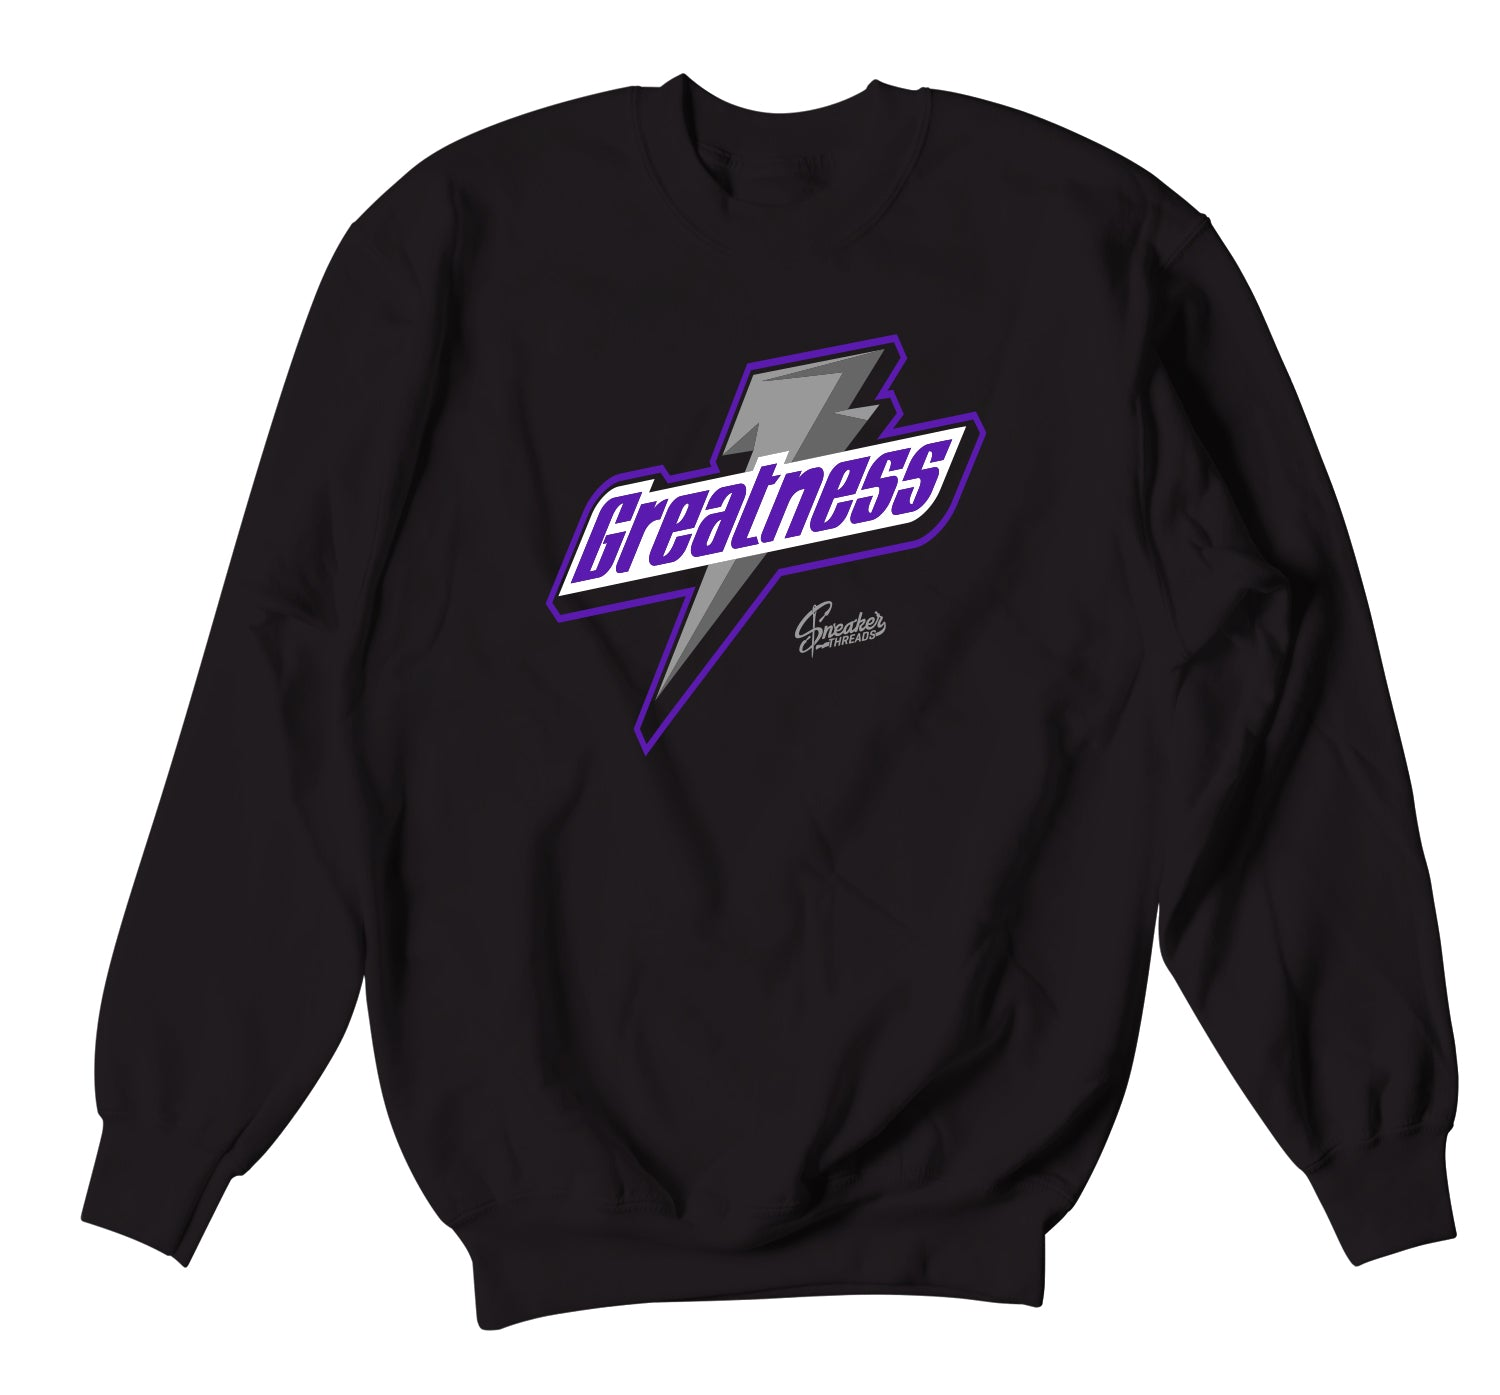 Jordan 12 Dark Concord Greatness Sweater